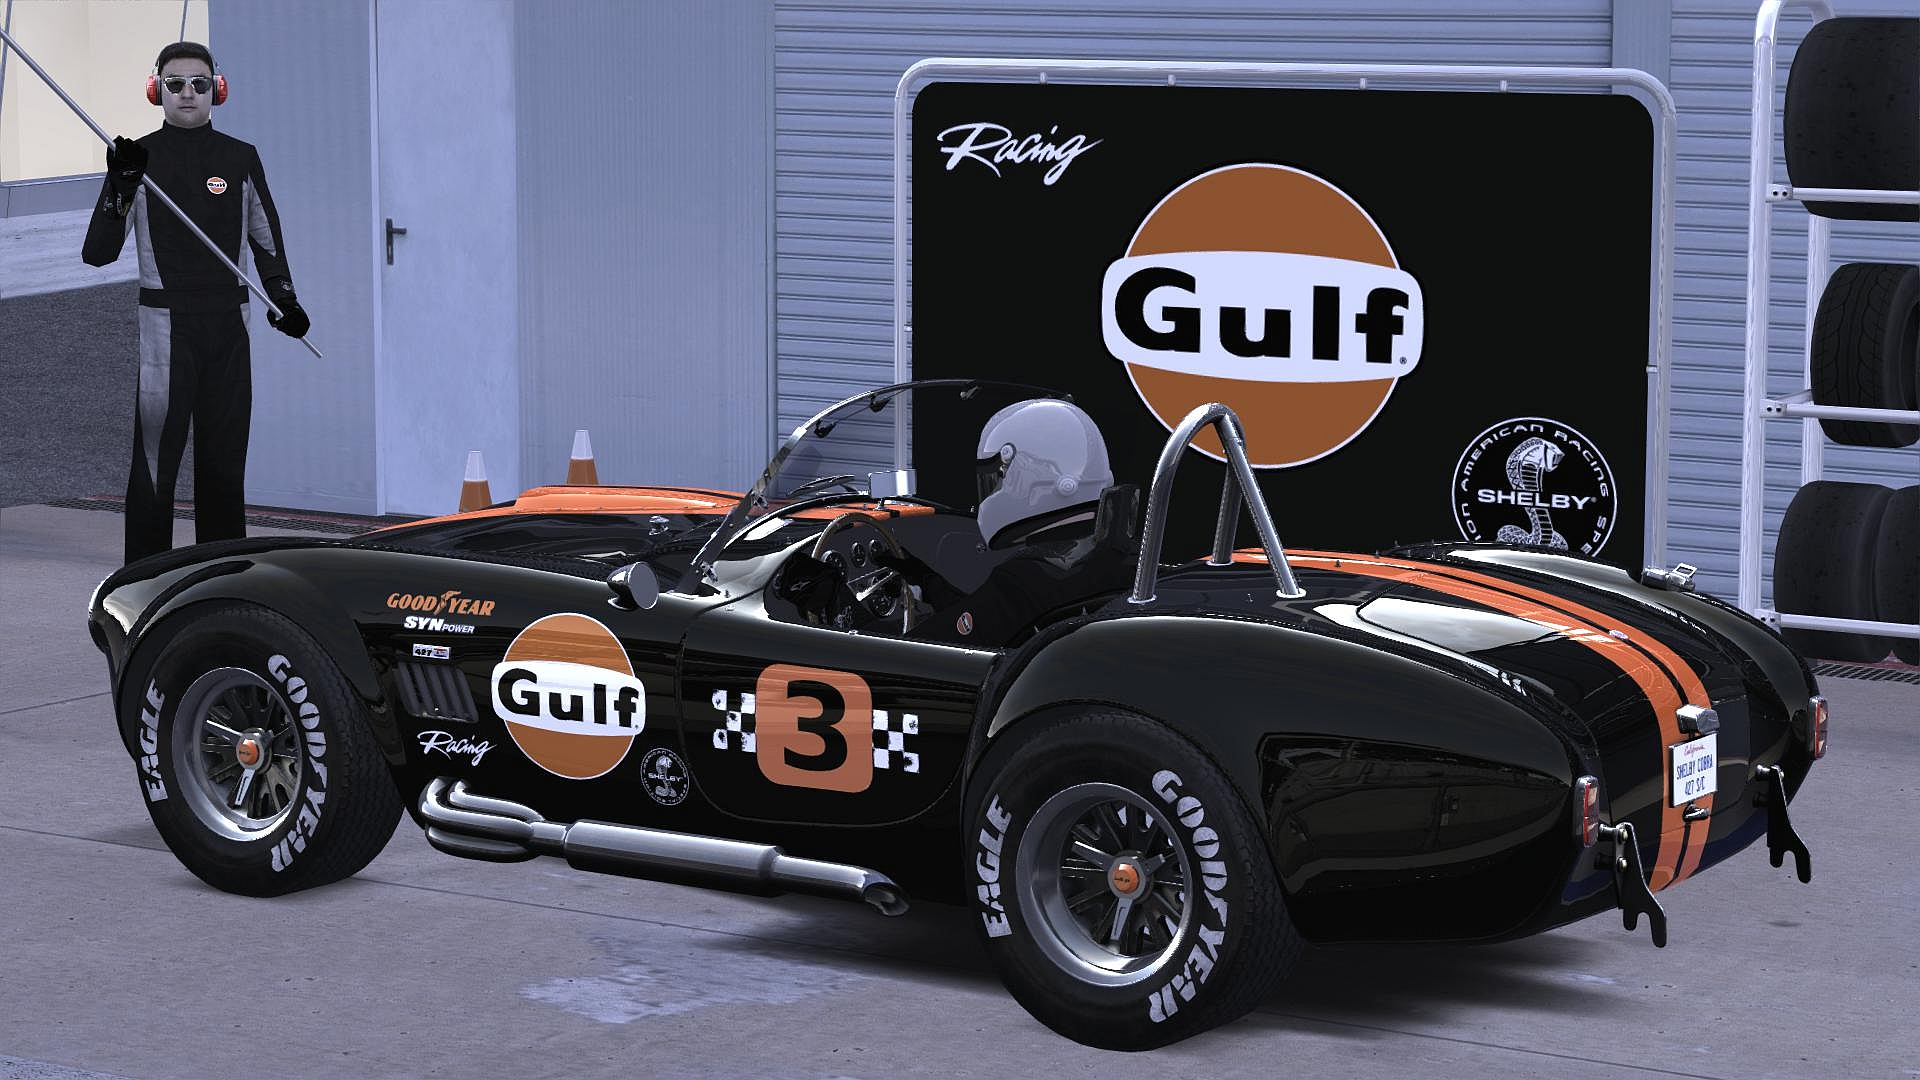 Cobra Gulf - Black edition